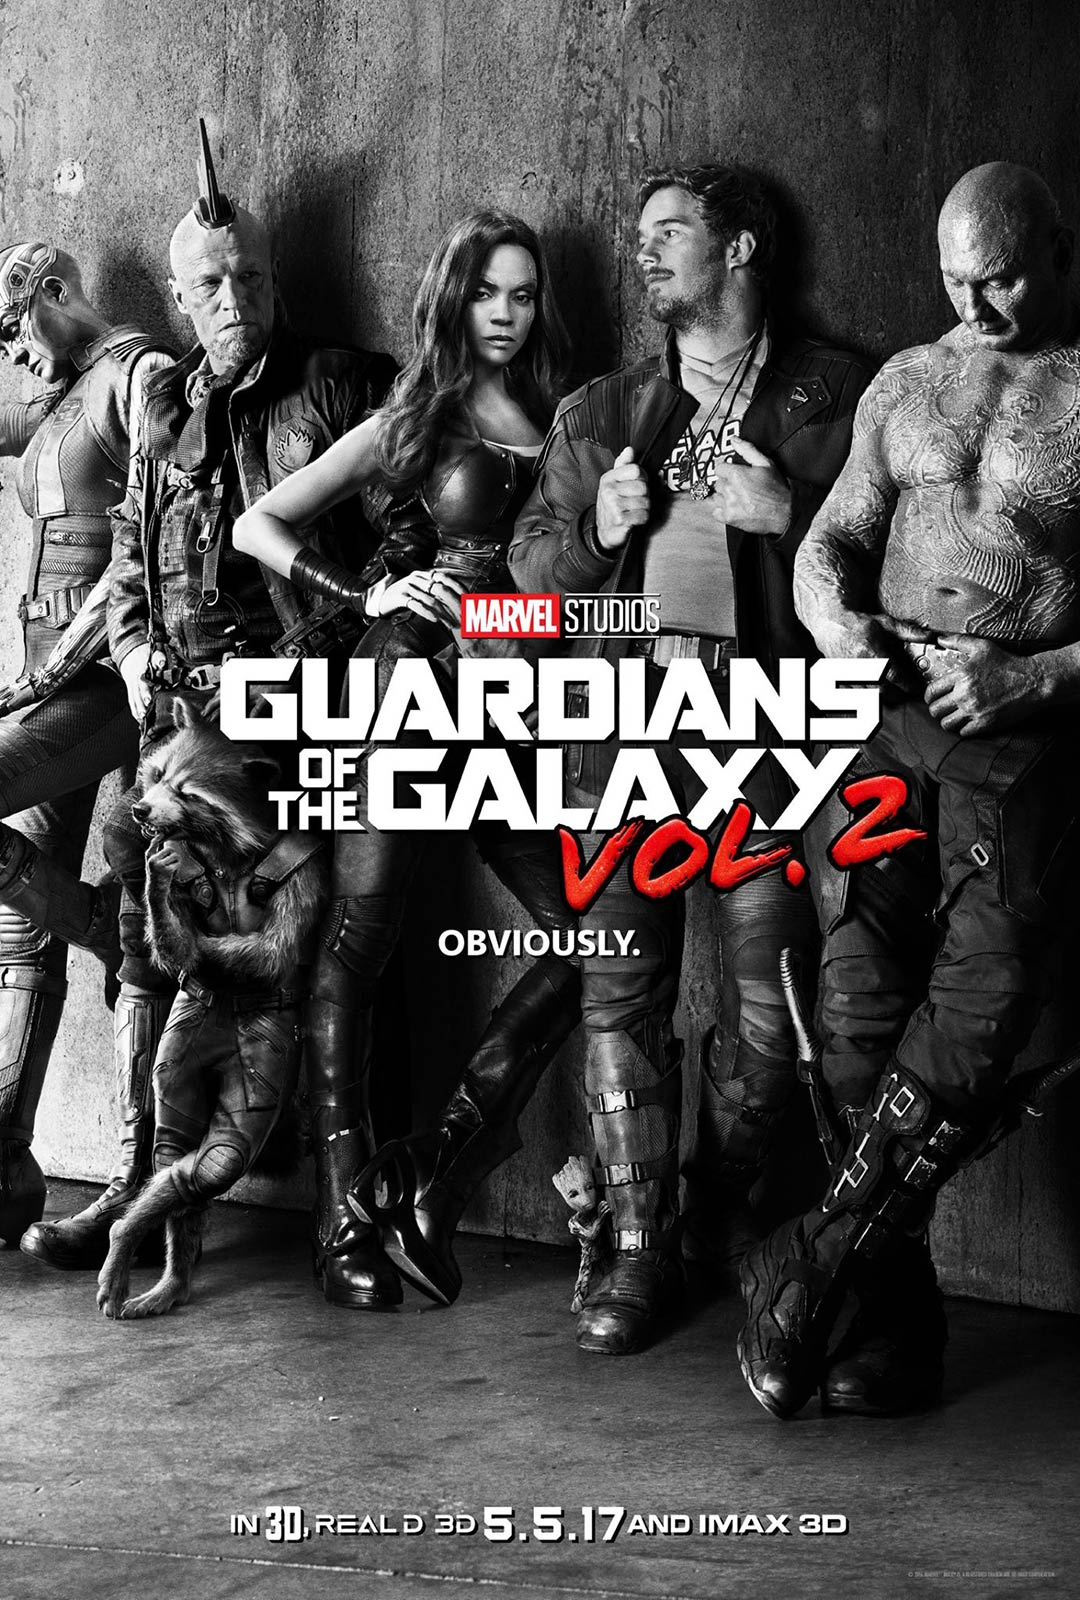 Guardian-of-the-galaxy-vol-2-high-quality-printable-posters-wallpapers-official-team-poster